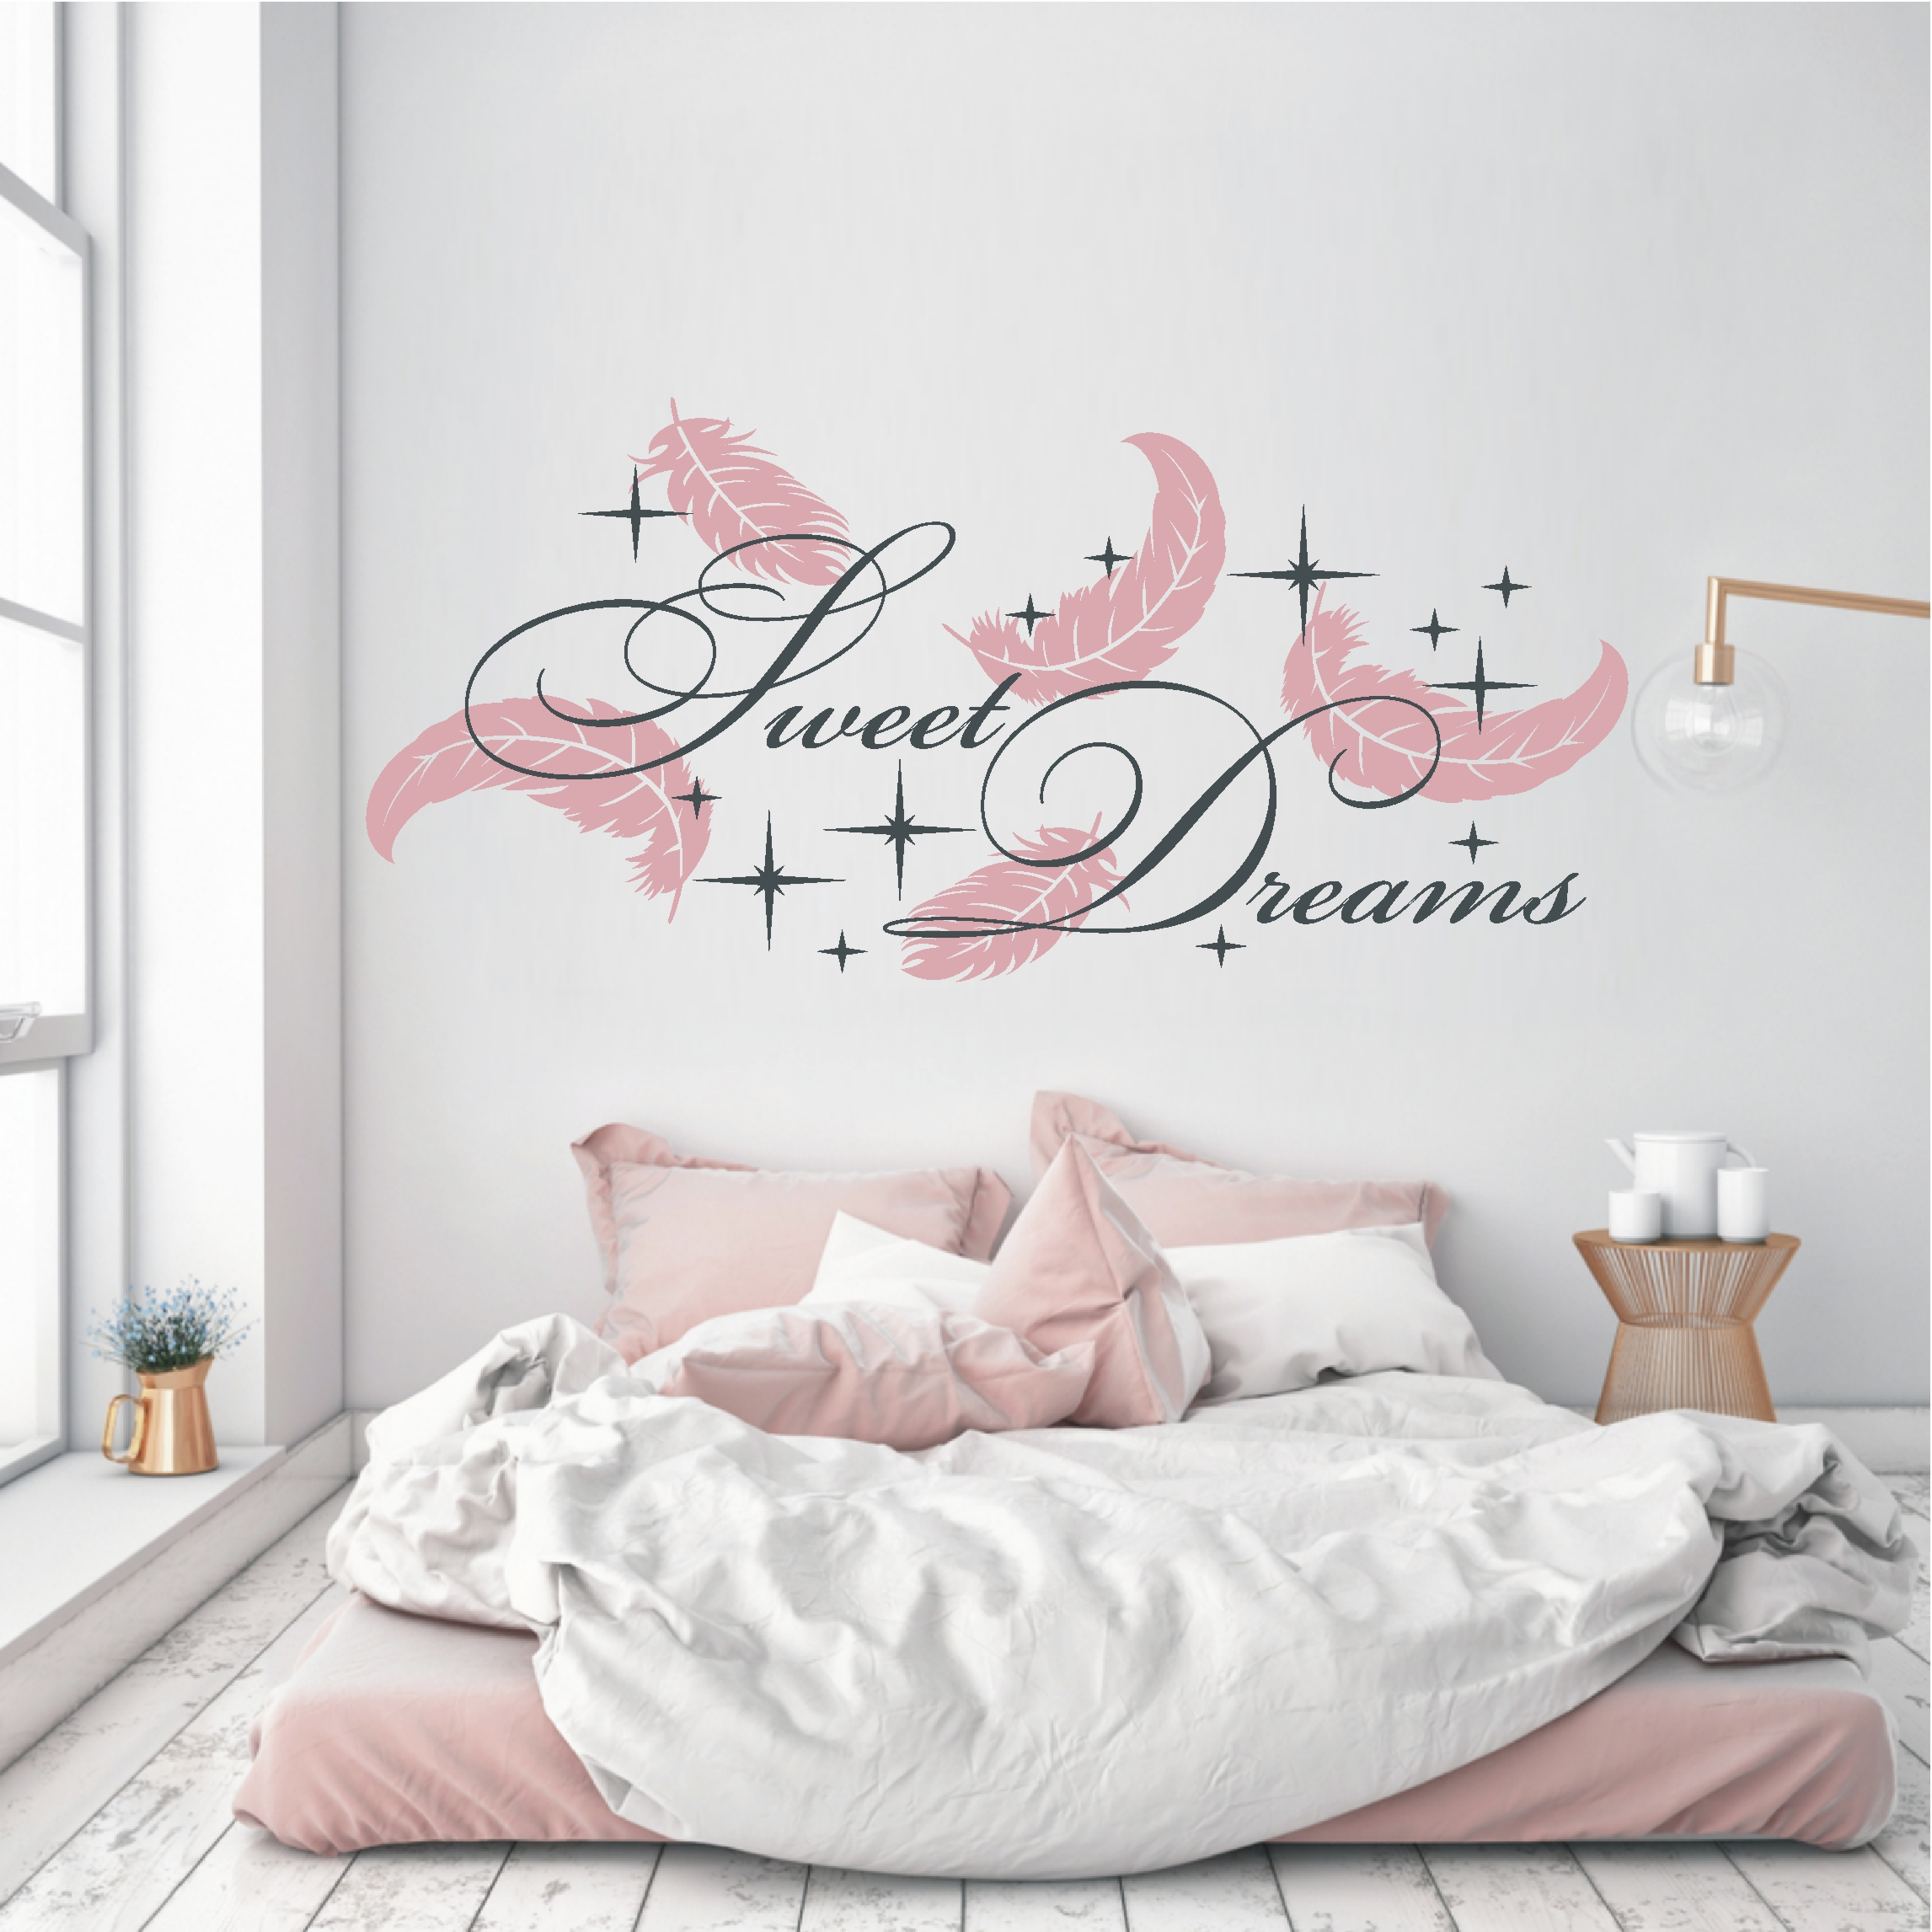 deko shop wandtattoo sweet dreams federn 2 farbig deko shop. Black Bedroom Furniture Sets. Home Design Ideas